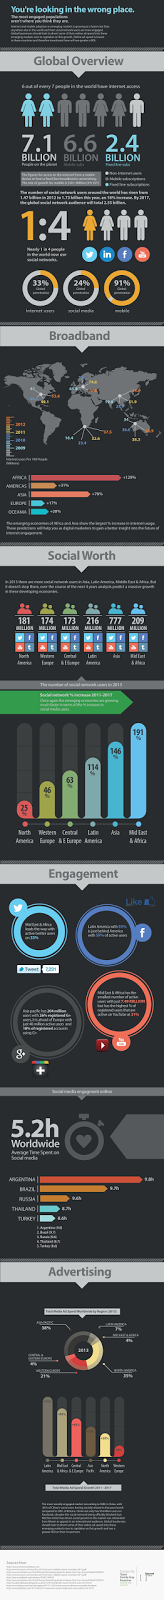 http://socialmediatoday.com/irfan-ahmad/1993606/global-overview-internet-mobile-and-social-media-engagement-and-usage-infographi